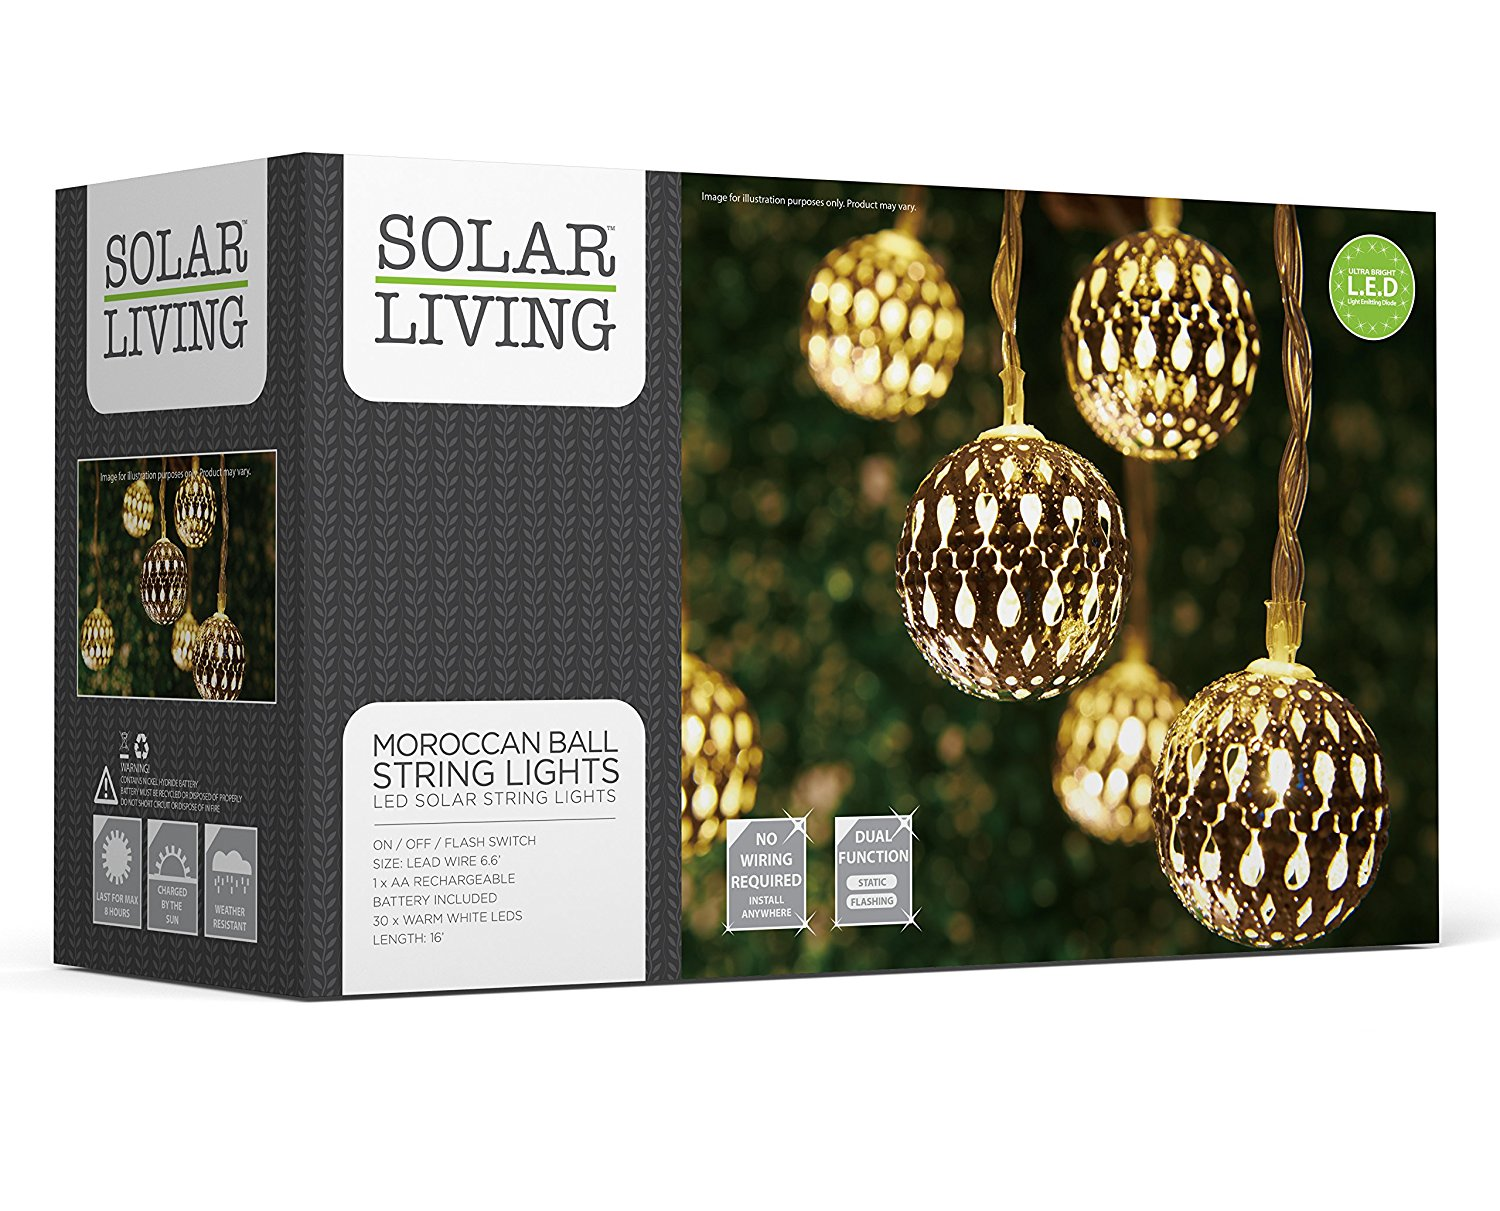 get quotations solar living solar moroccan ball string lights 30 leds total extra long length ambient